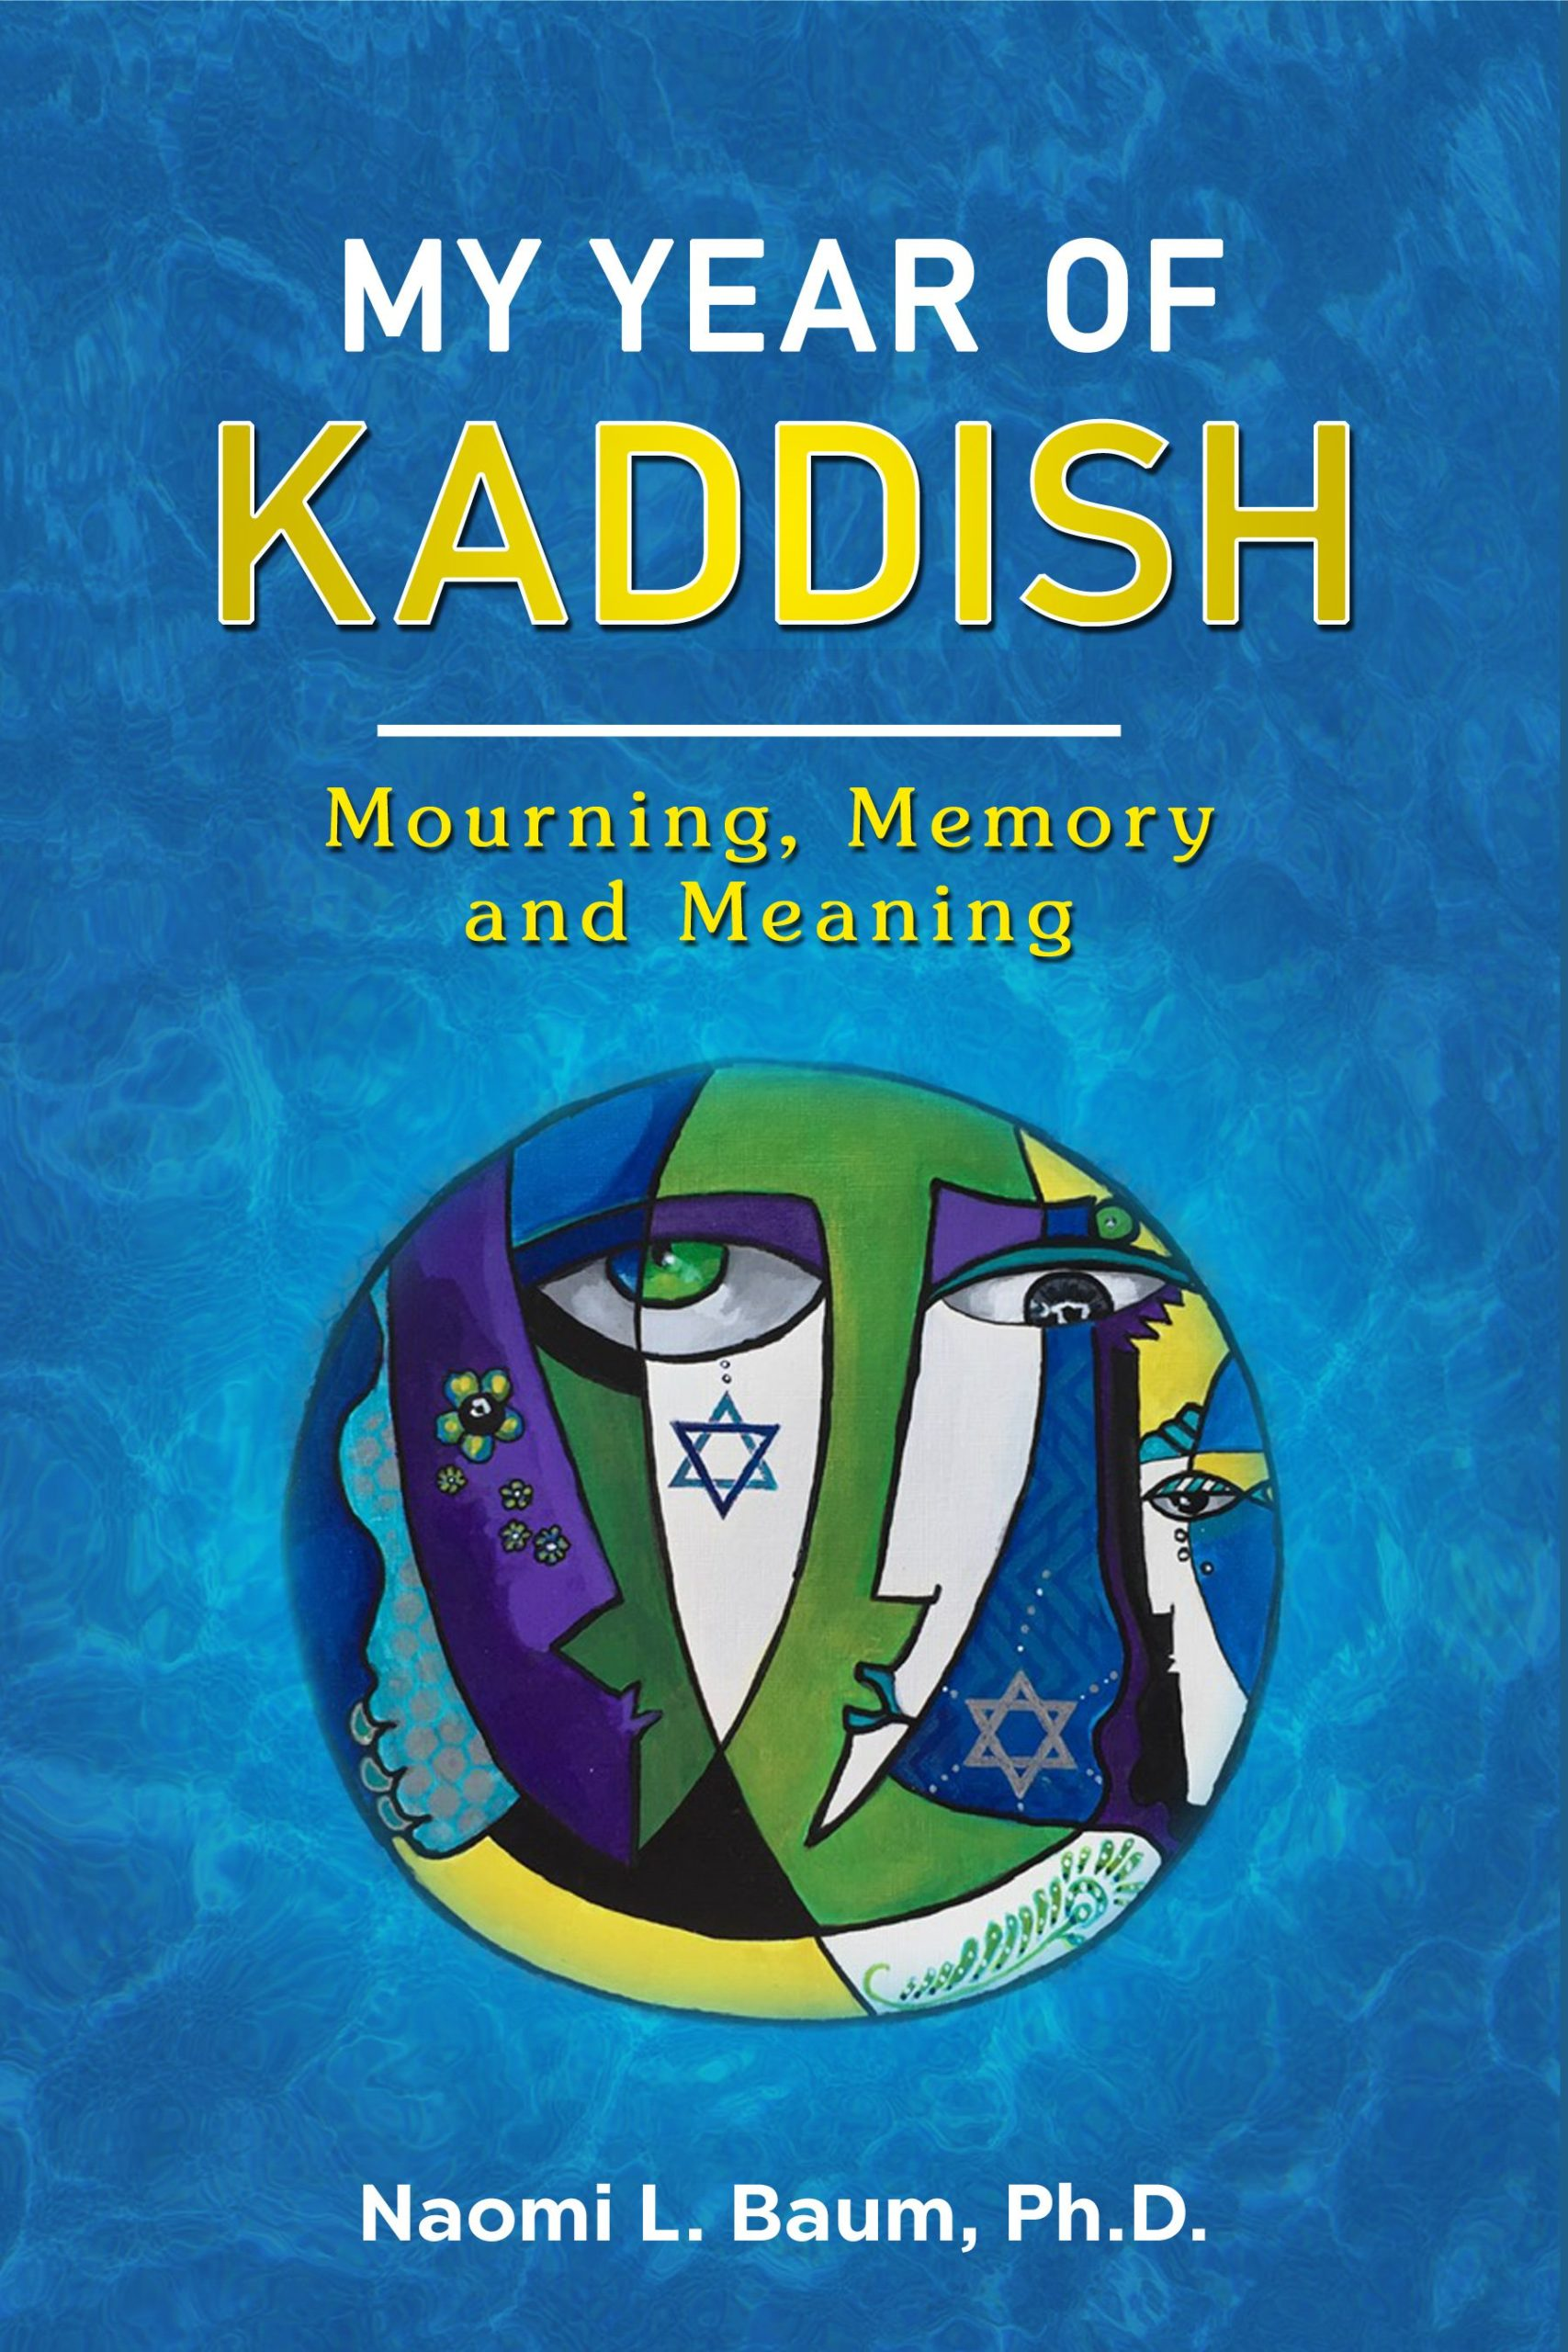 My Year of Kaddish book cover